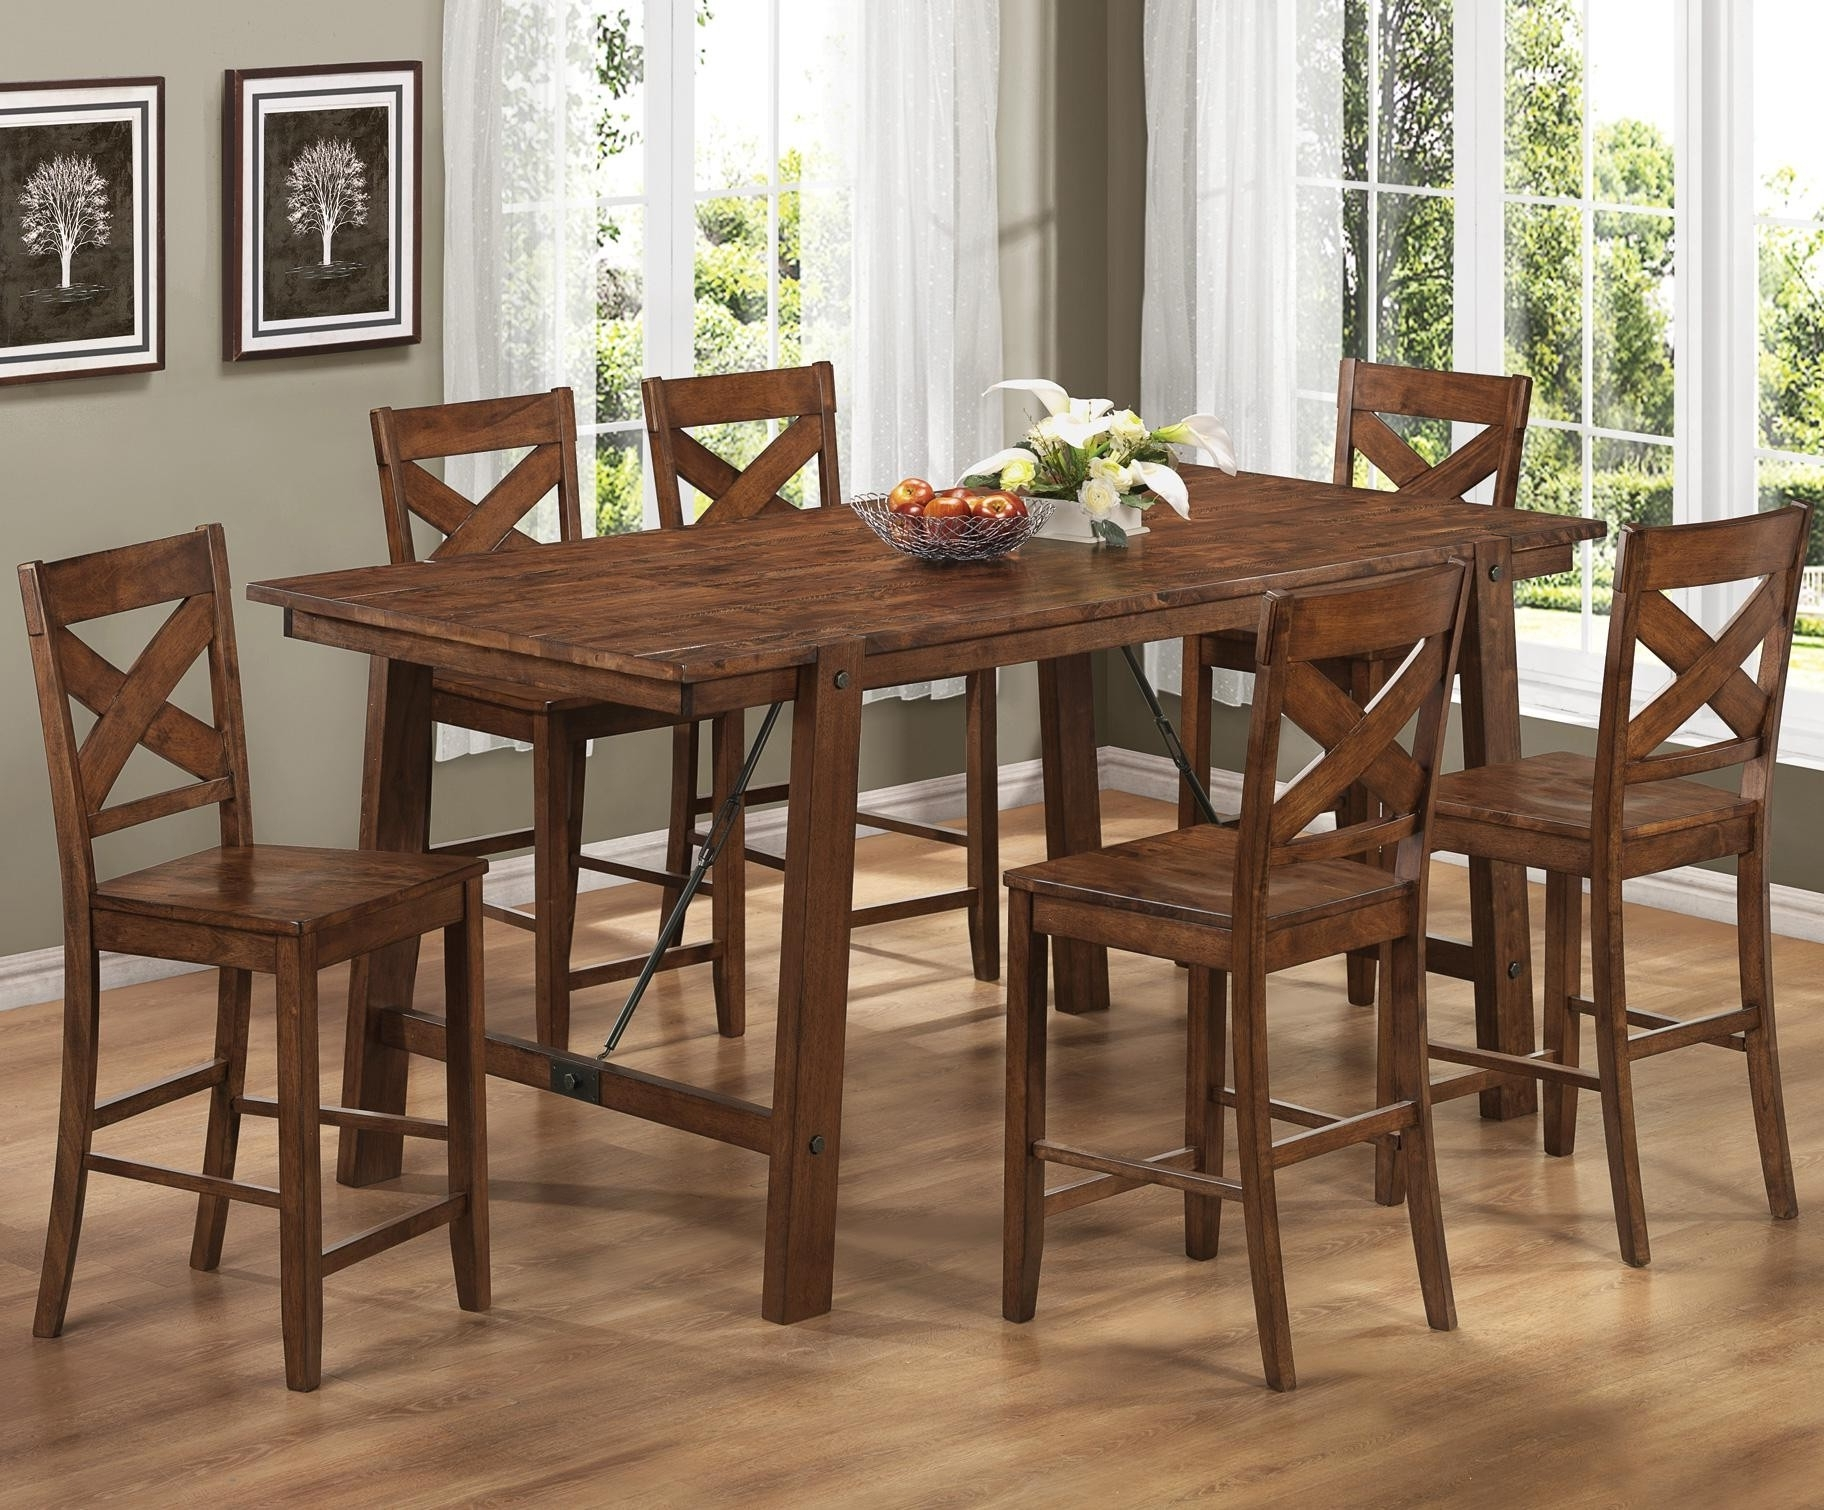 Dining Tables For Six For 2017 High Top Kitchen Table Sets Homesfeed, Kitchen Tables And Chairs (View 8 of 25)